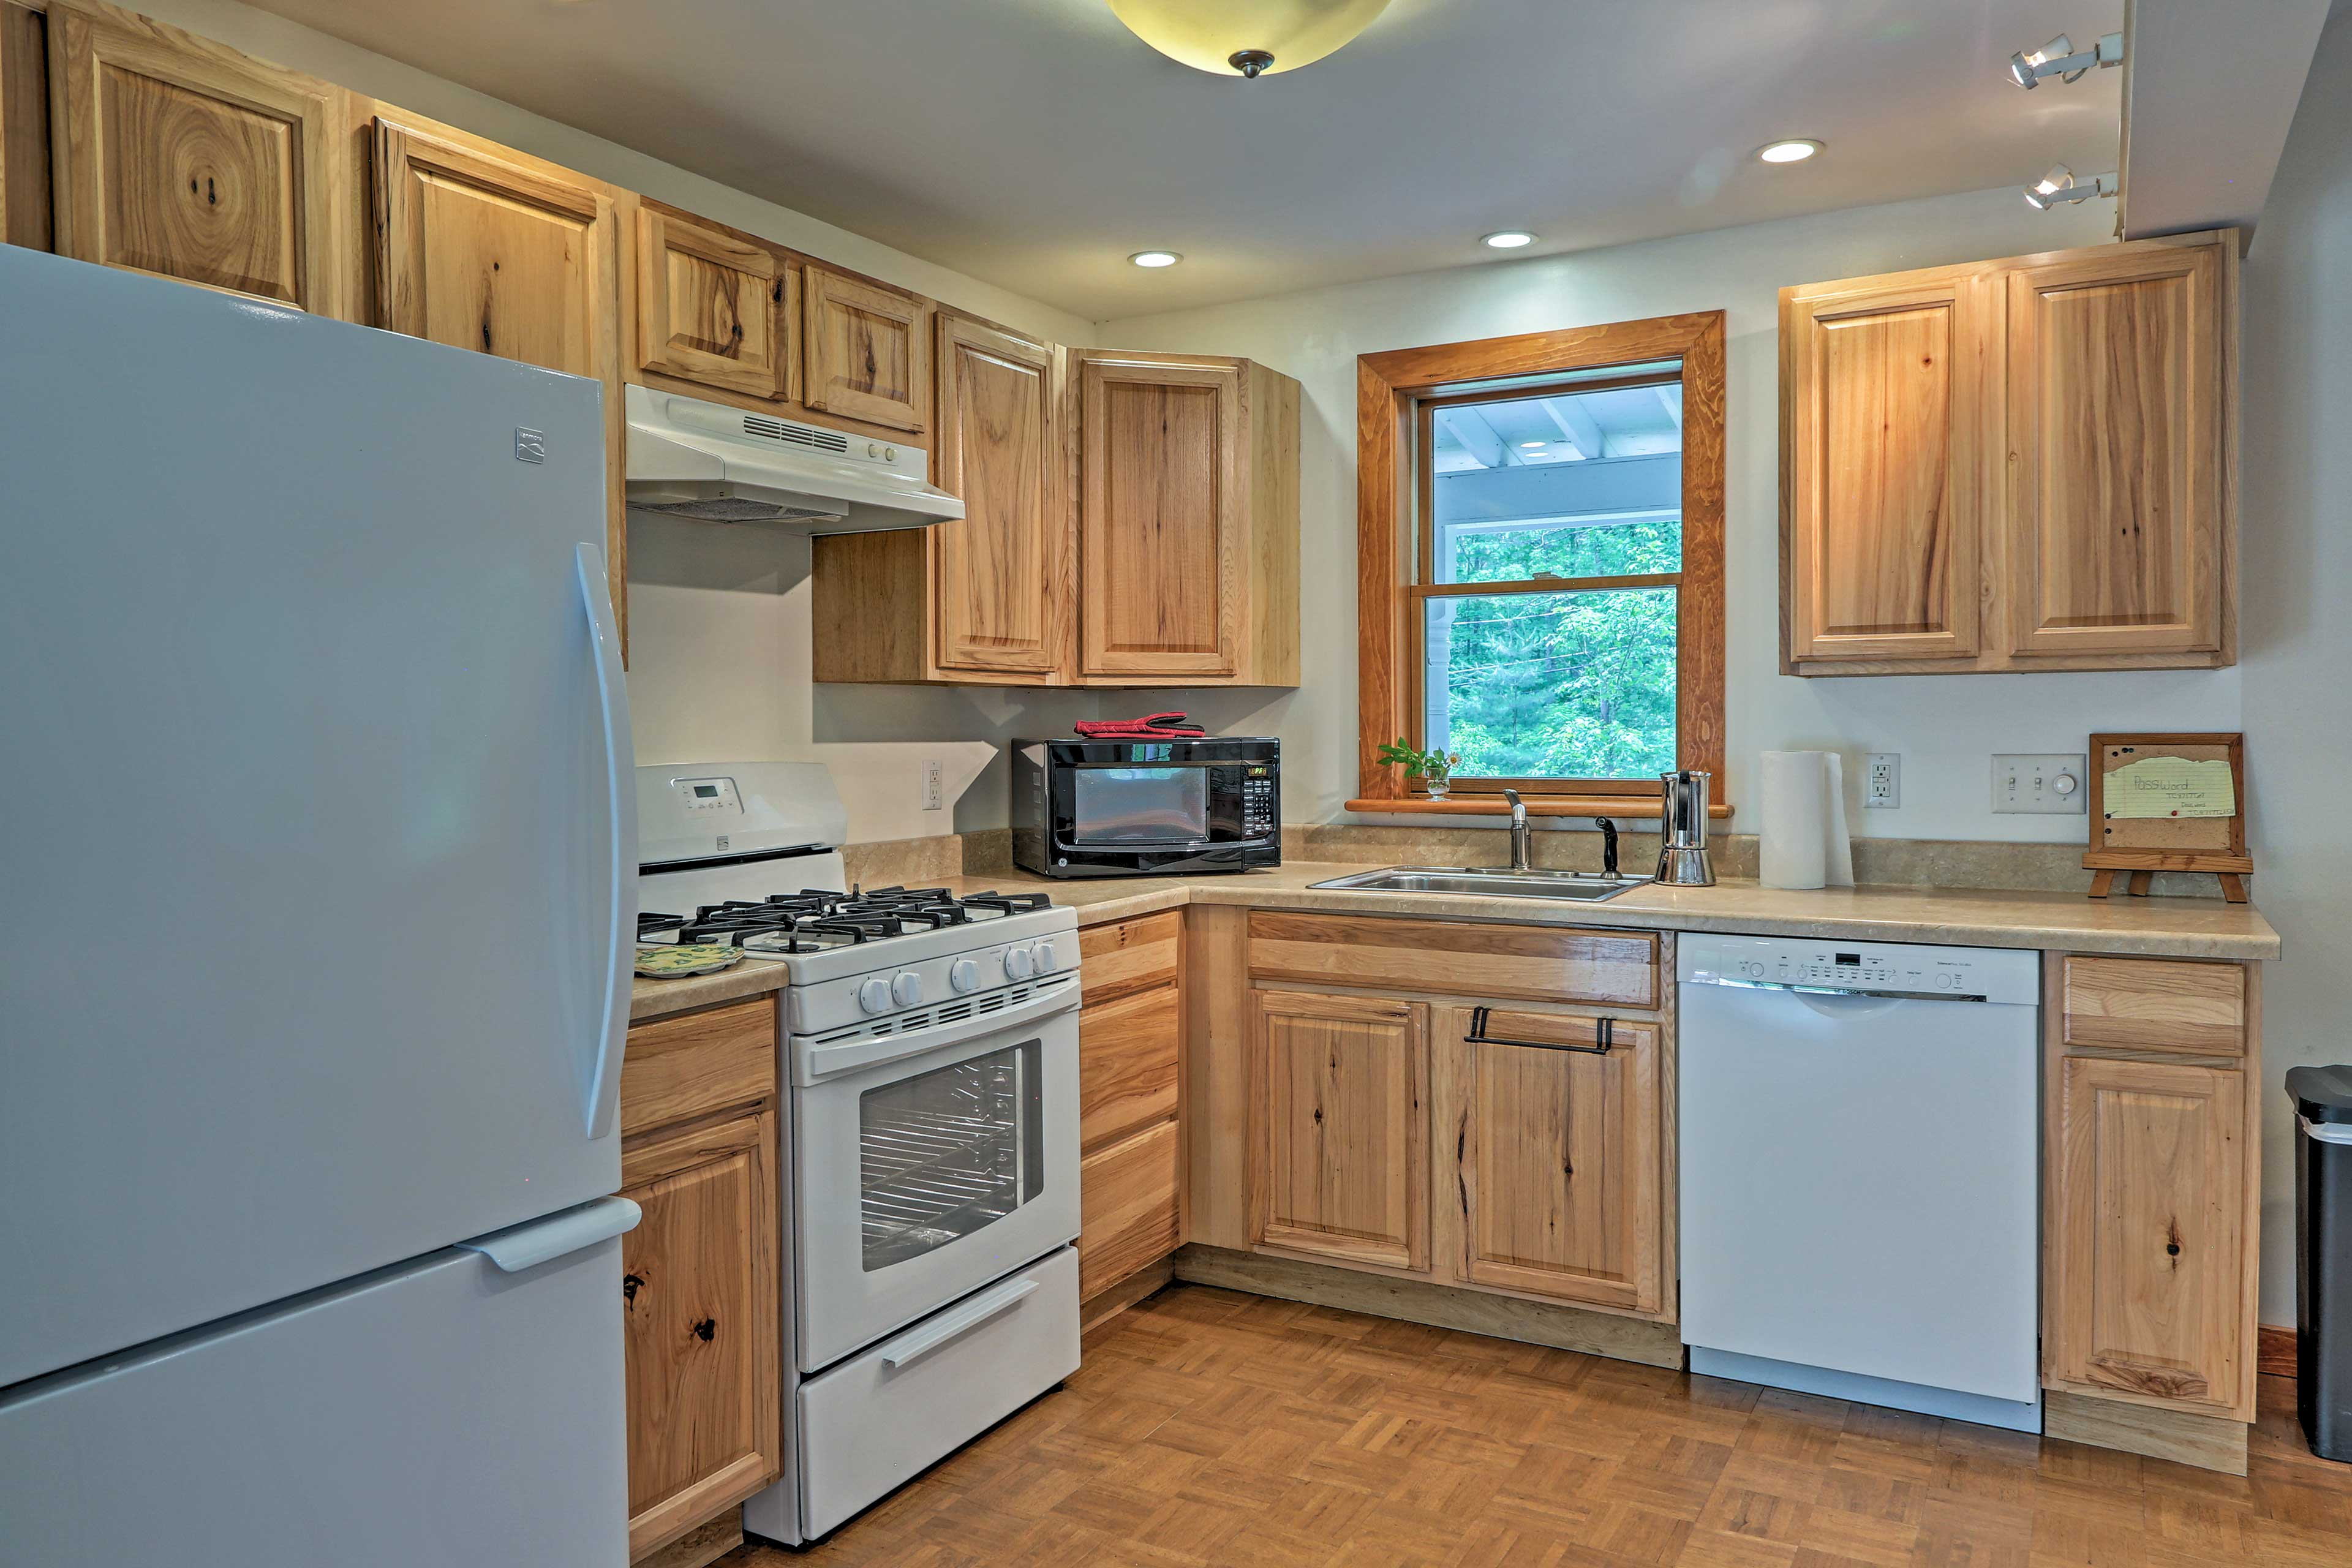 Create a delicious home-cooked meal in the fully equipped kitchen.